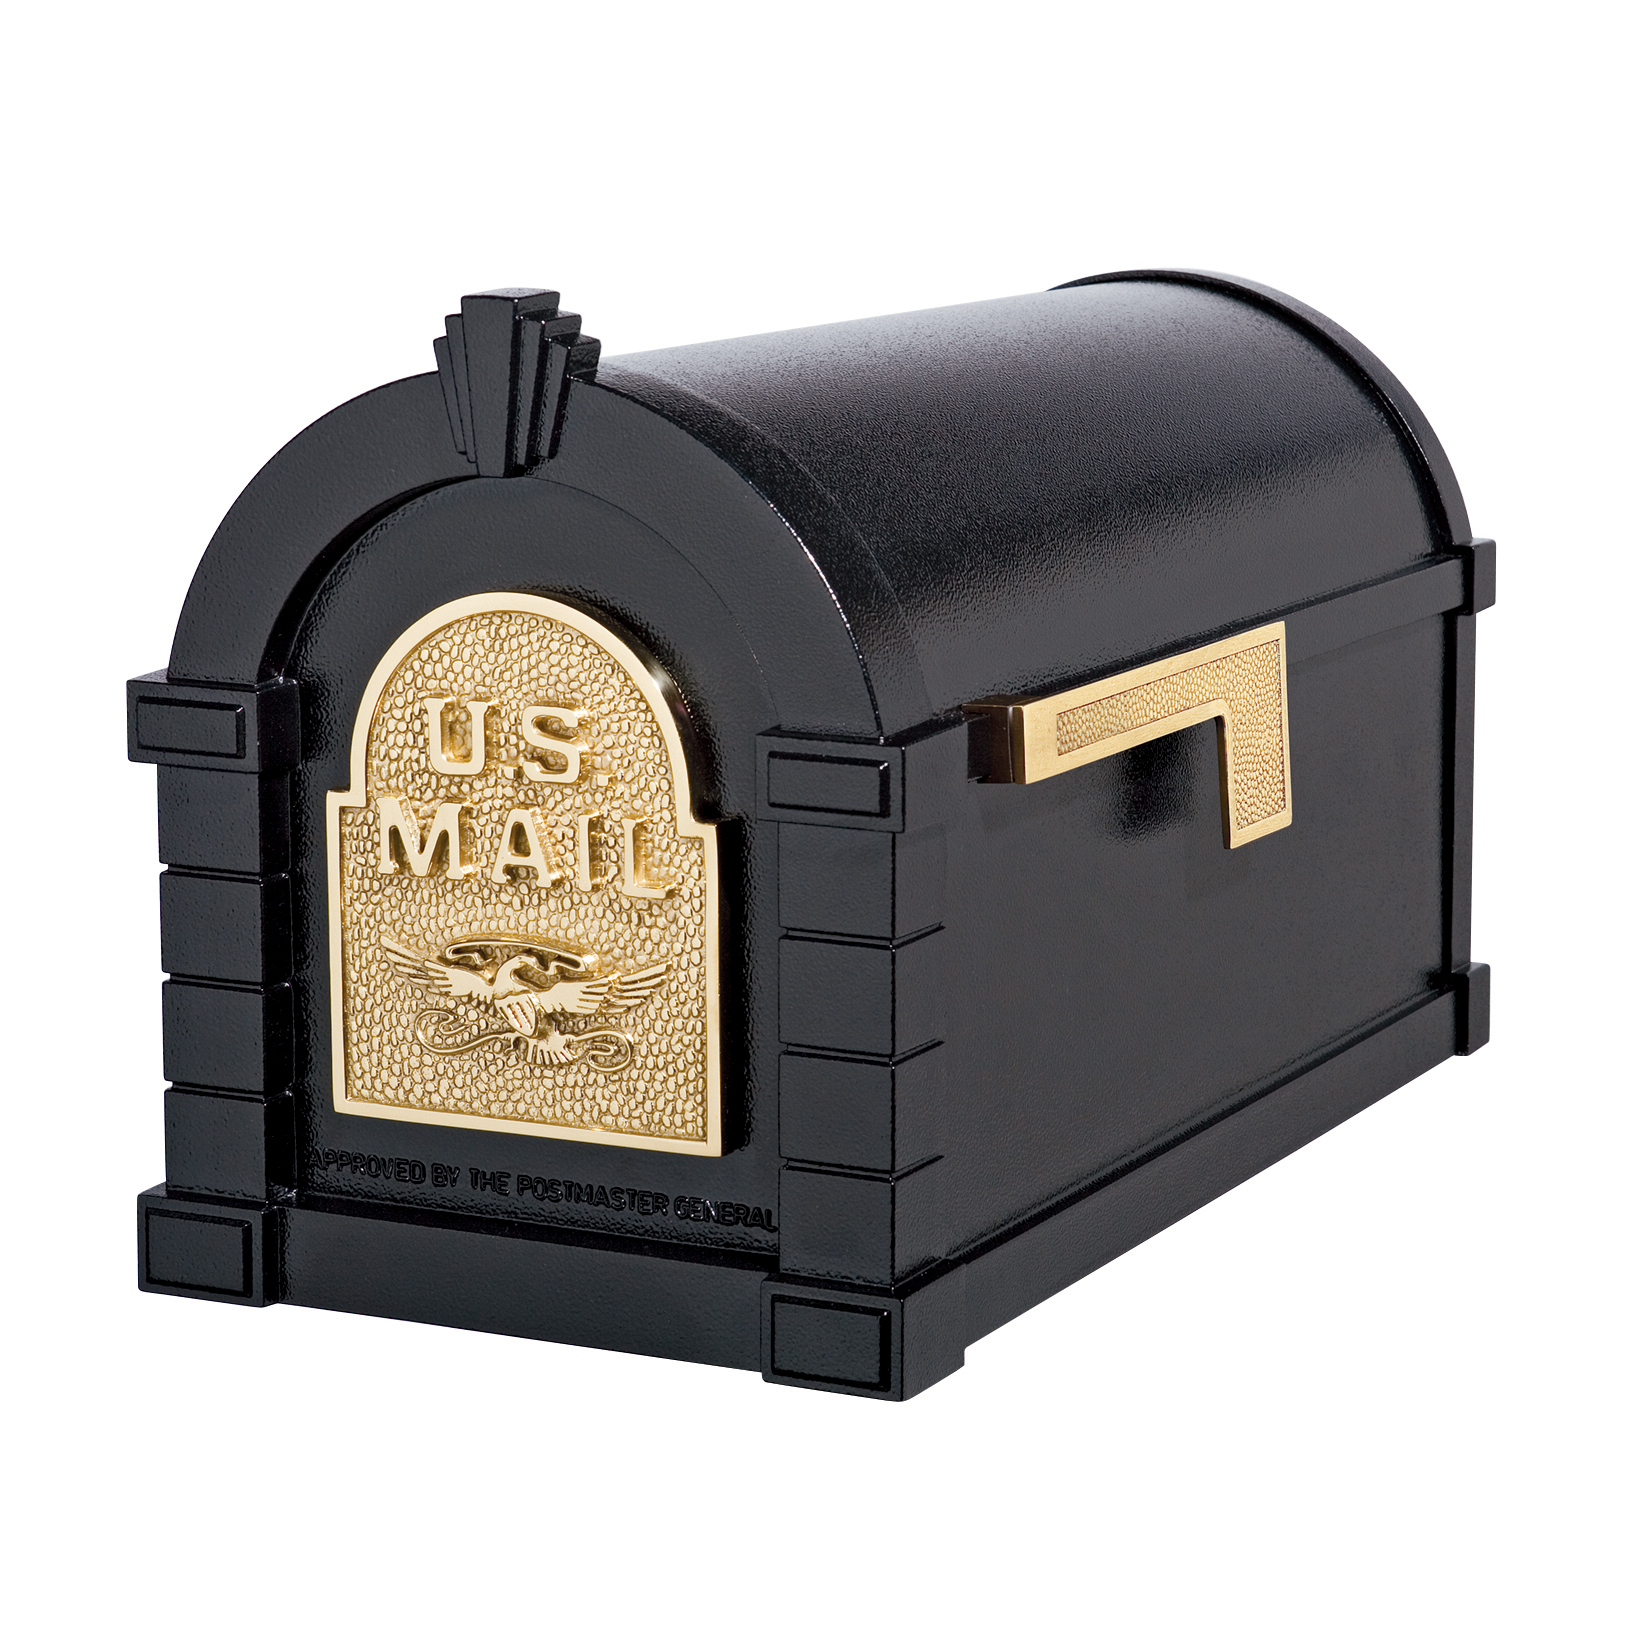 Gaines Eagle Keystone MailboxesBlack with Polished Brass